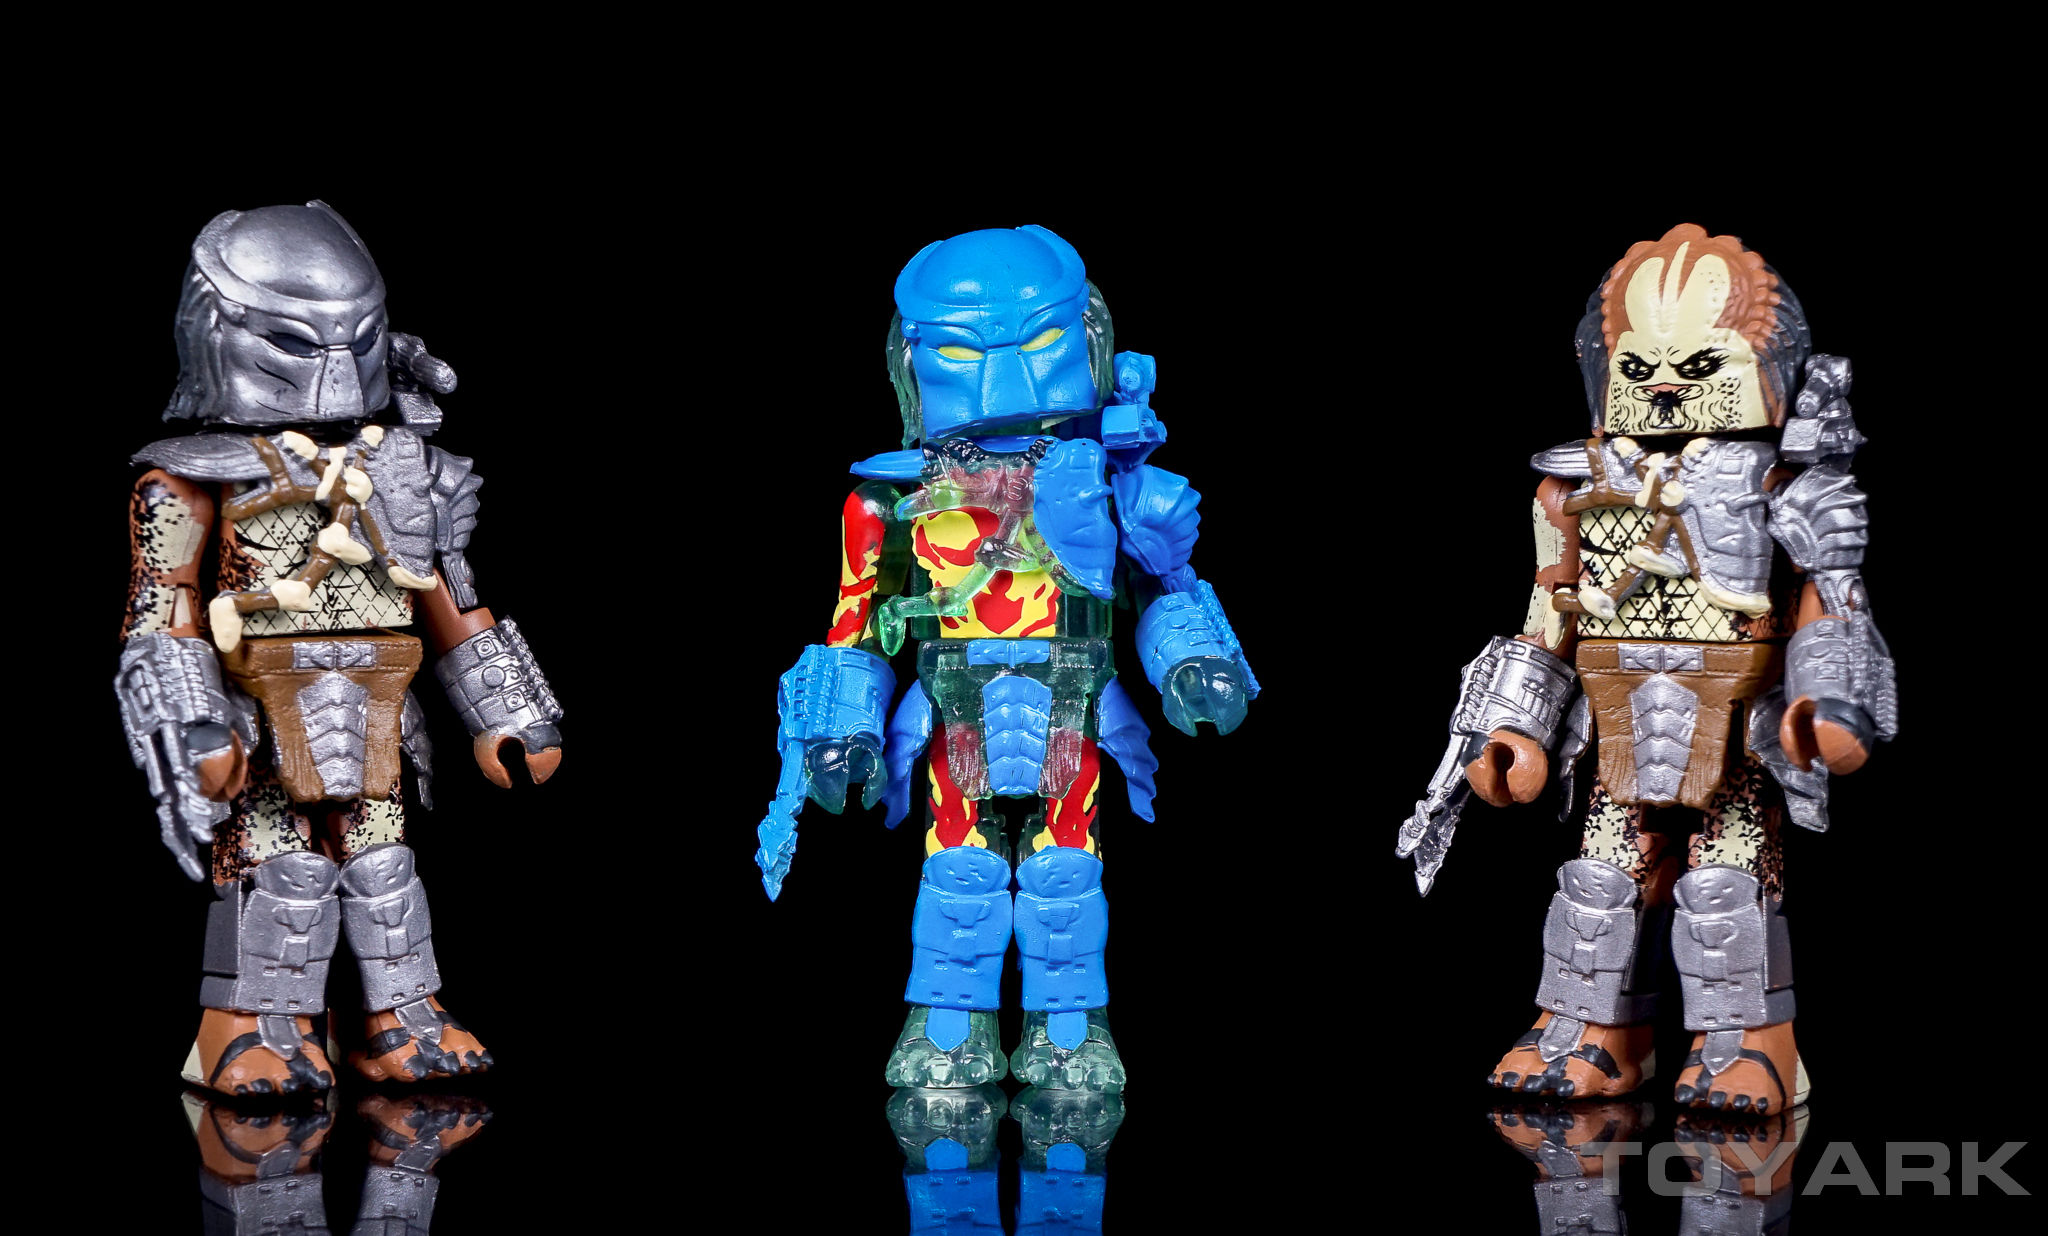 http://news.toyark.com/wp-content/uploads/sites/4/2016/04/Predator-Minimates-Blind-Bagged-023.jpg